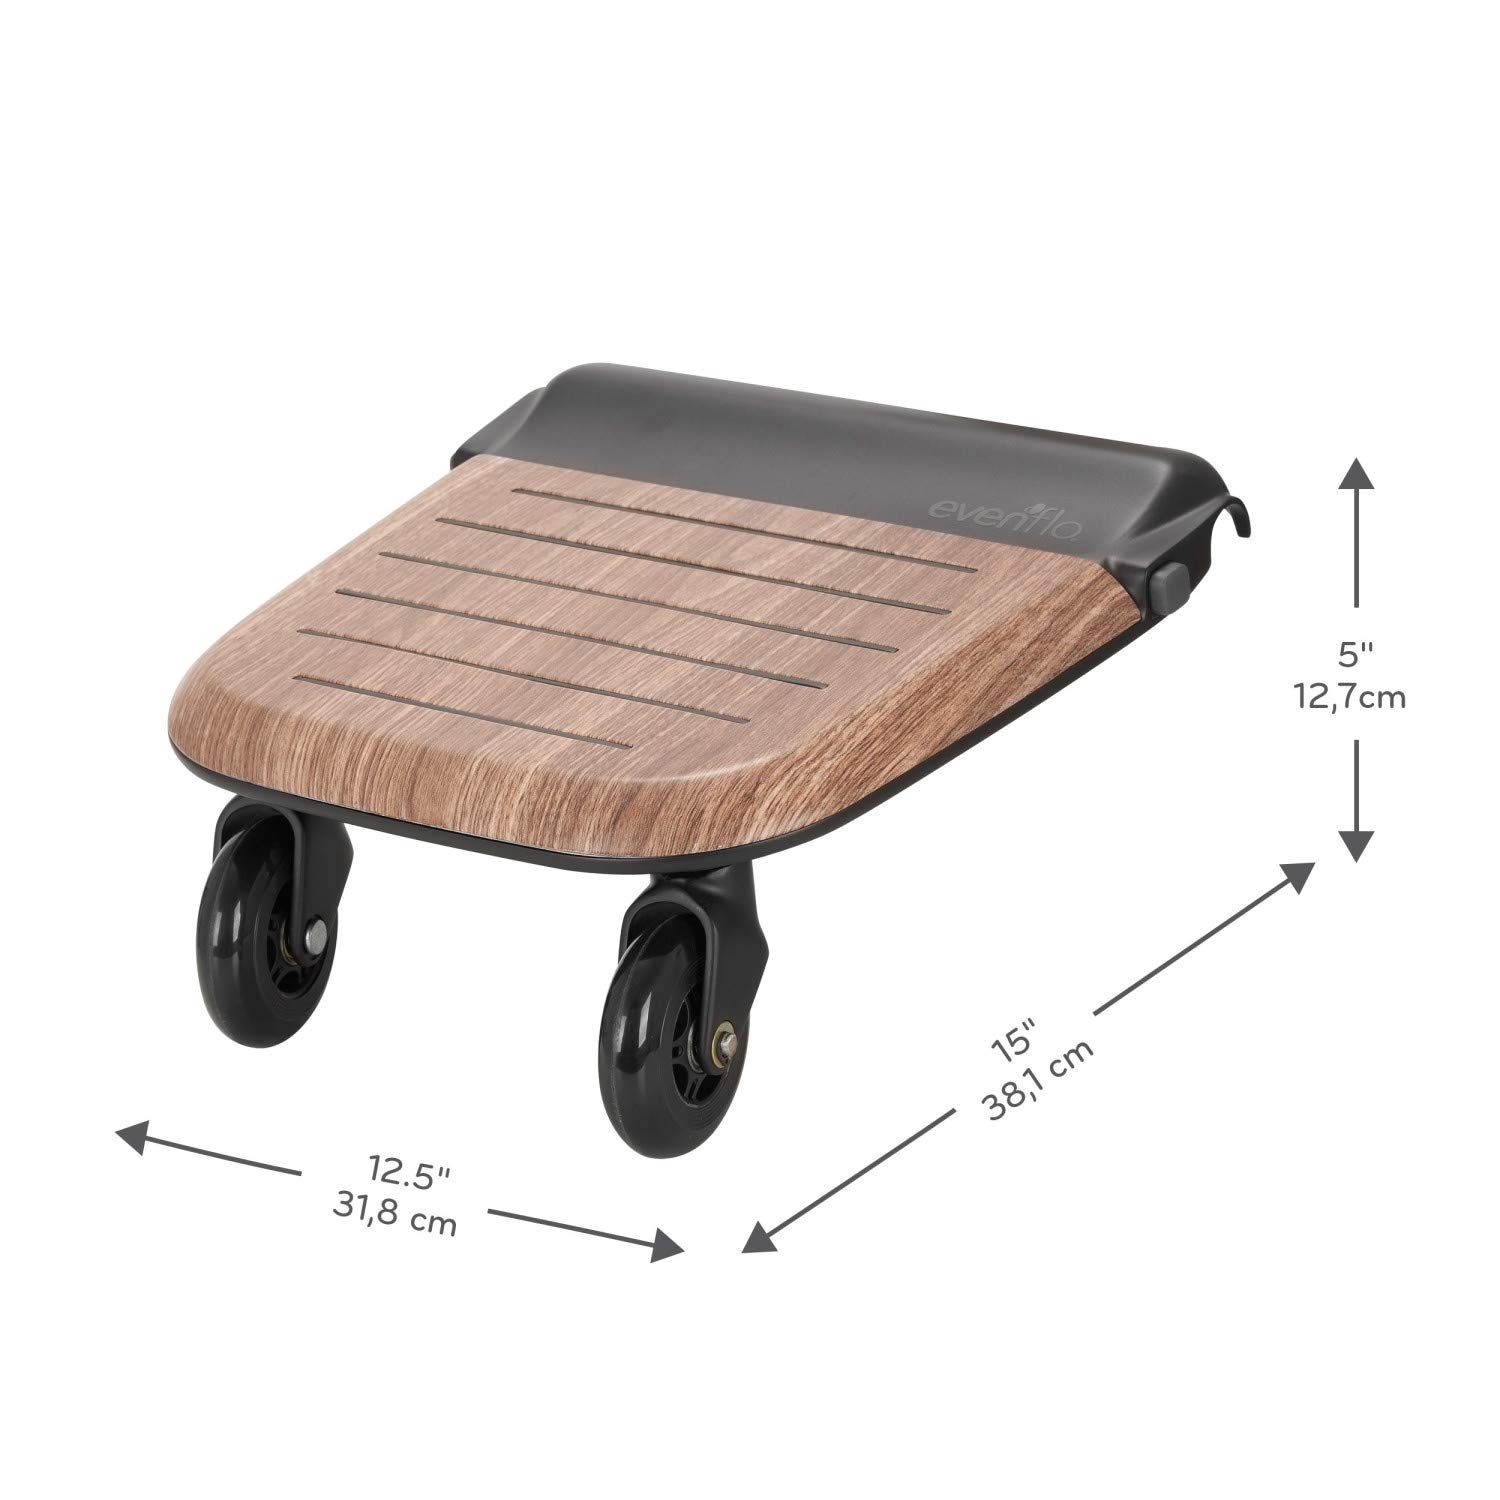 Evenflo Stroller Rider Board, Convenient Riding Options, Non-Skid Surface, Smooth-Ride Wheels, Easy to Use, Holds up to 50 Pounds, No Additional Parts Needed by Evenflo (Image #8)